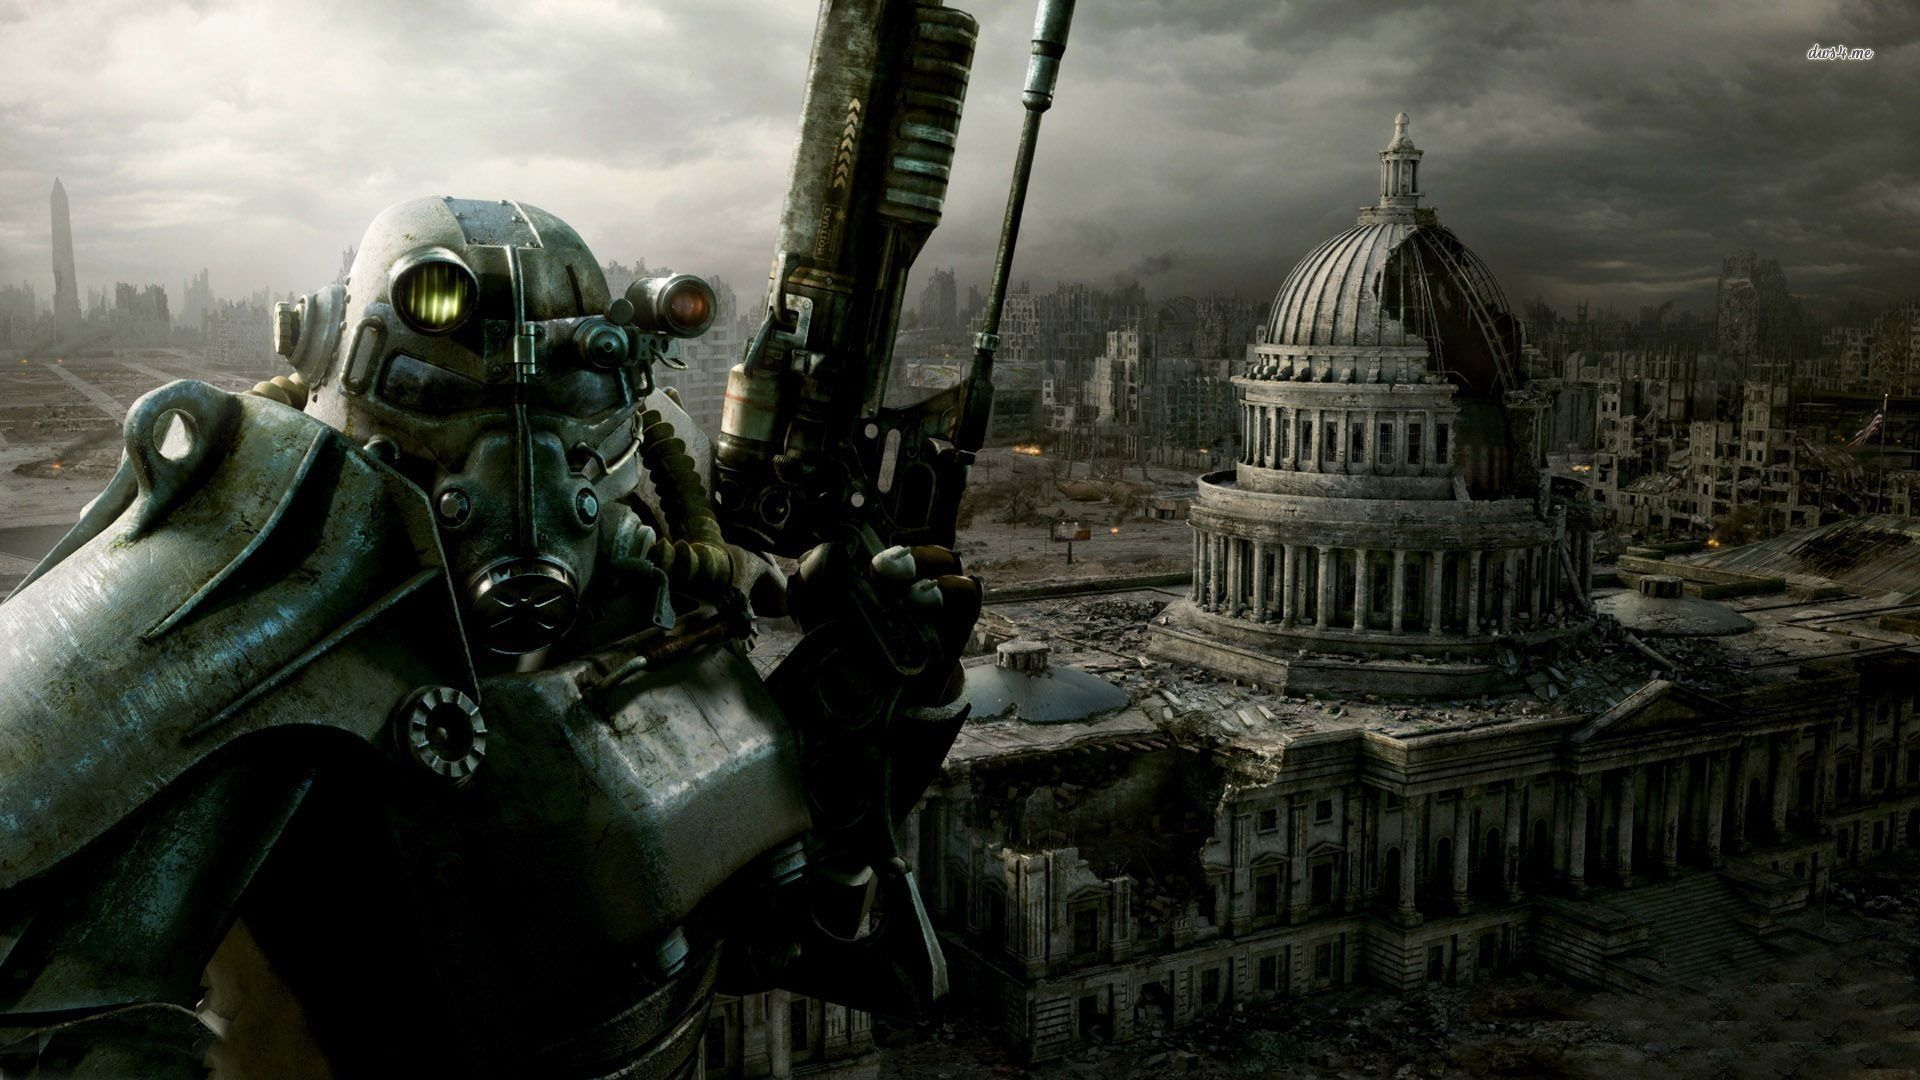 Fallout 3 Desktop Background Fallout Wallpaper Wallpaper Pictures Live Wallpapers